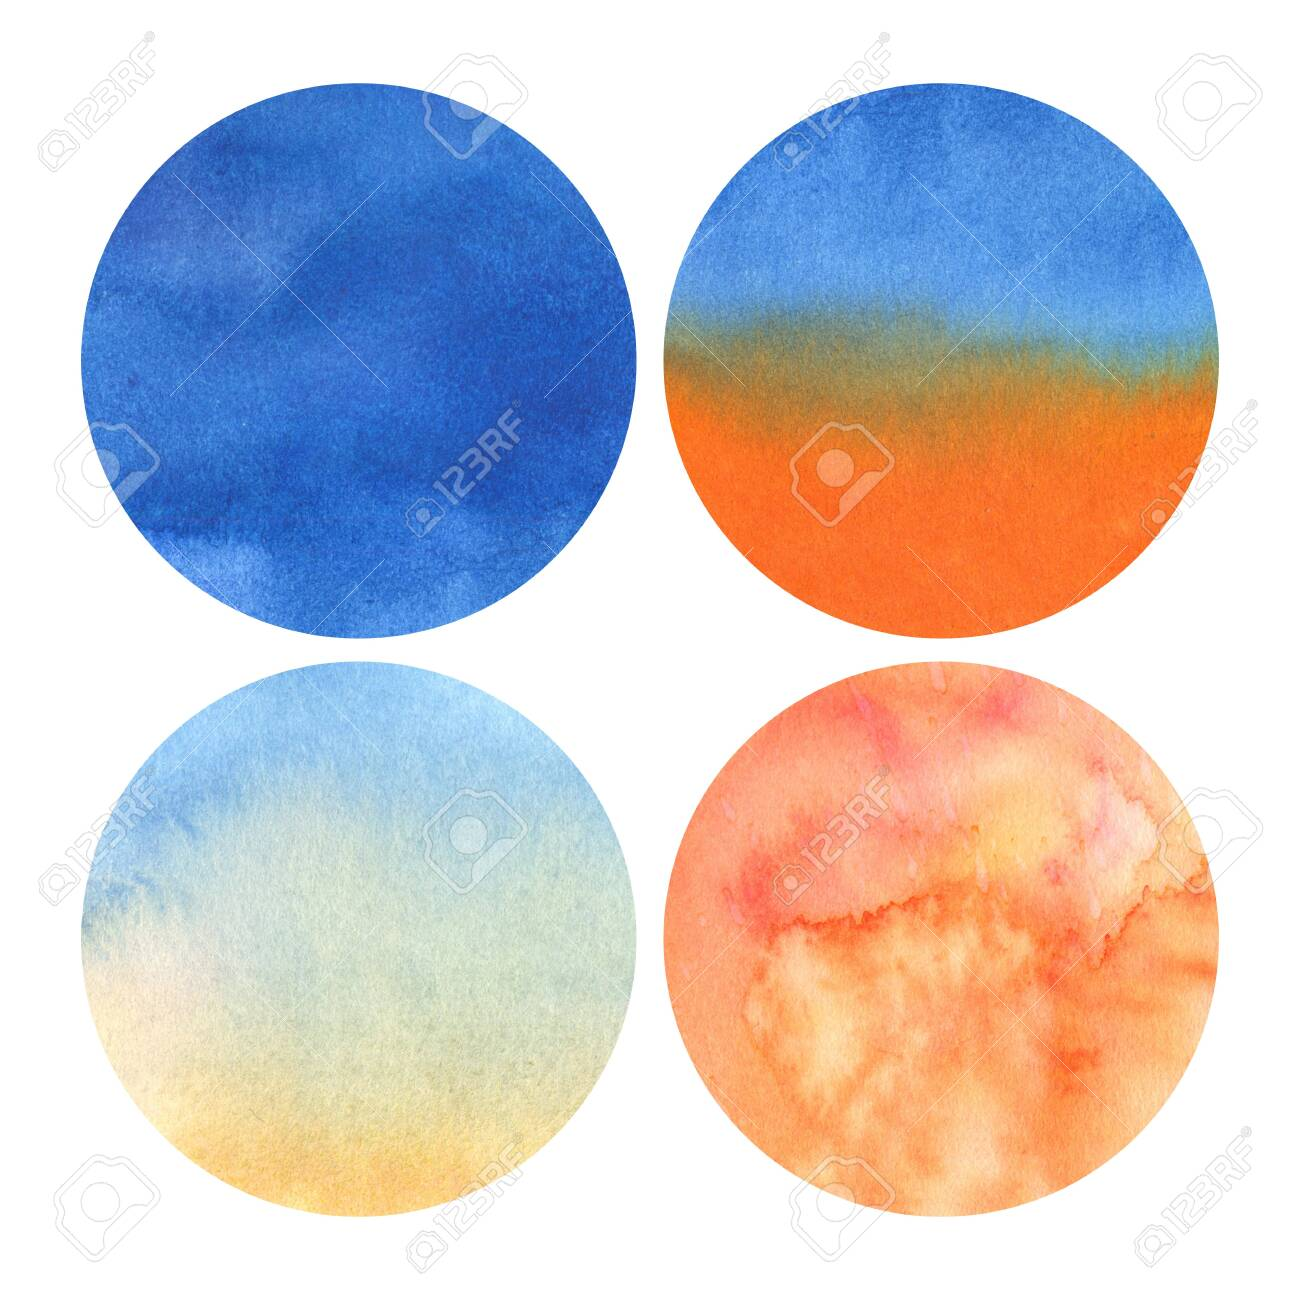 set of 4 watercolor circles with shades from deep blue to light orange - 135852961